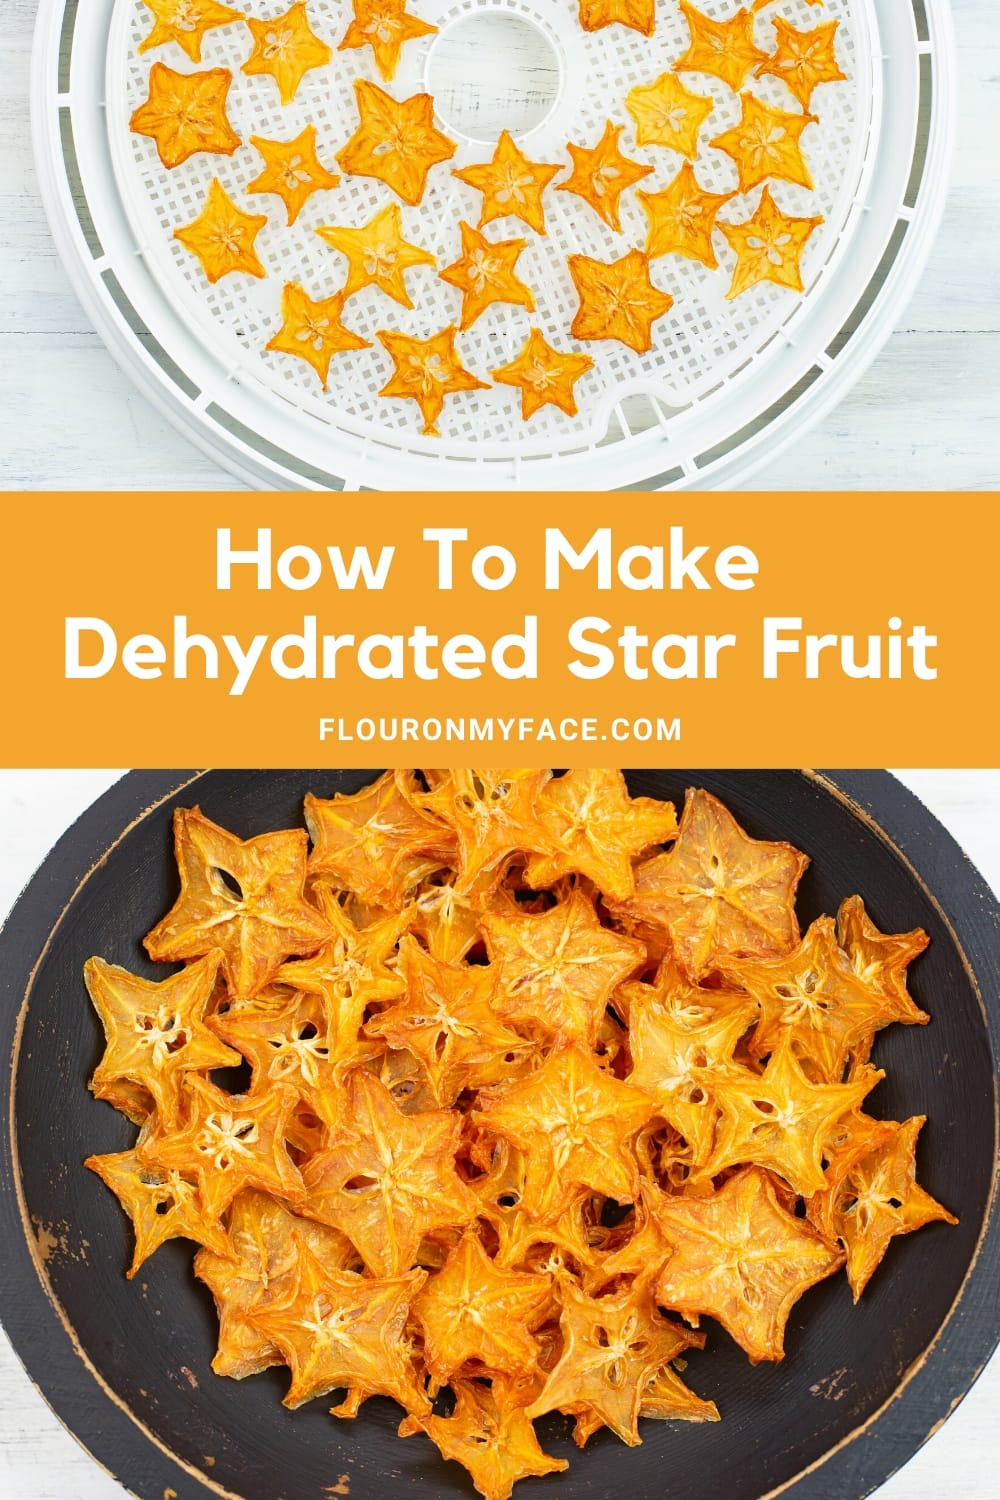 Featured image of dehydrating fresh star fruit